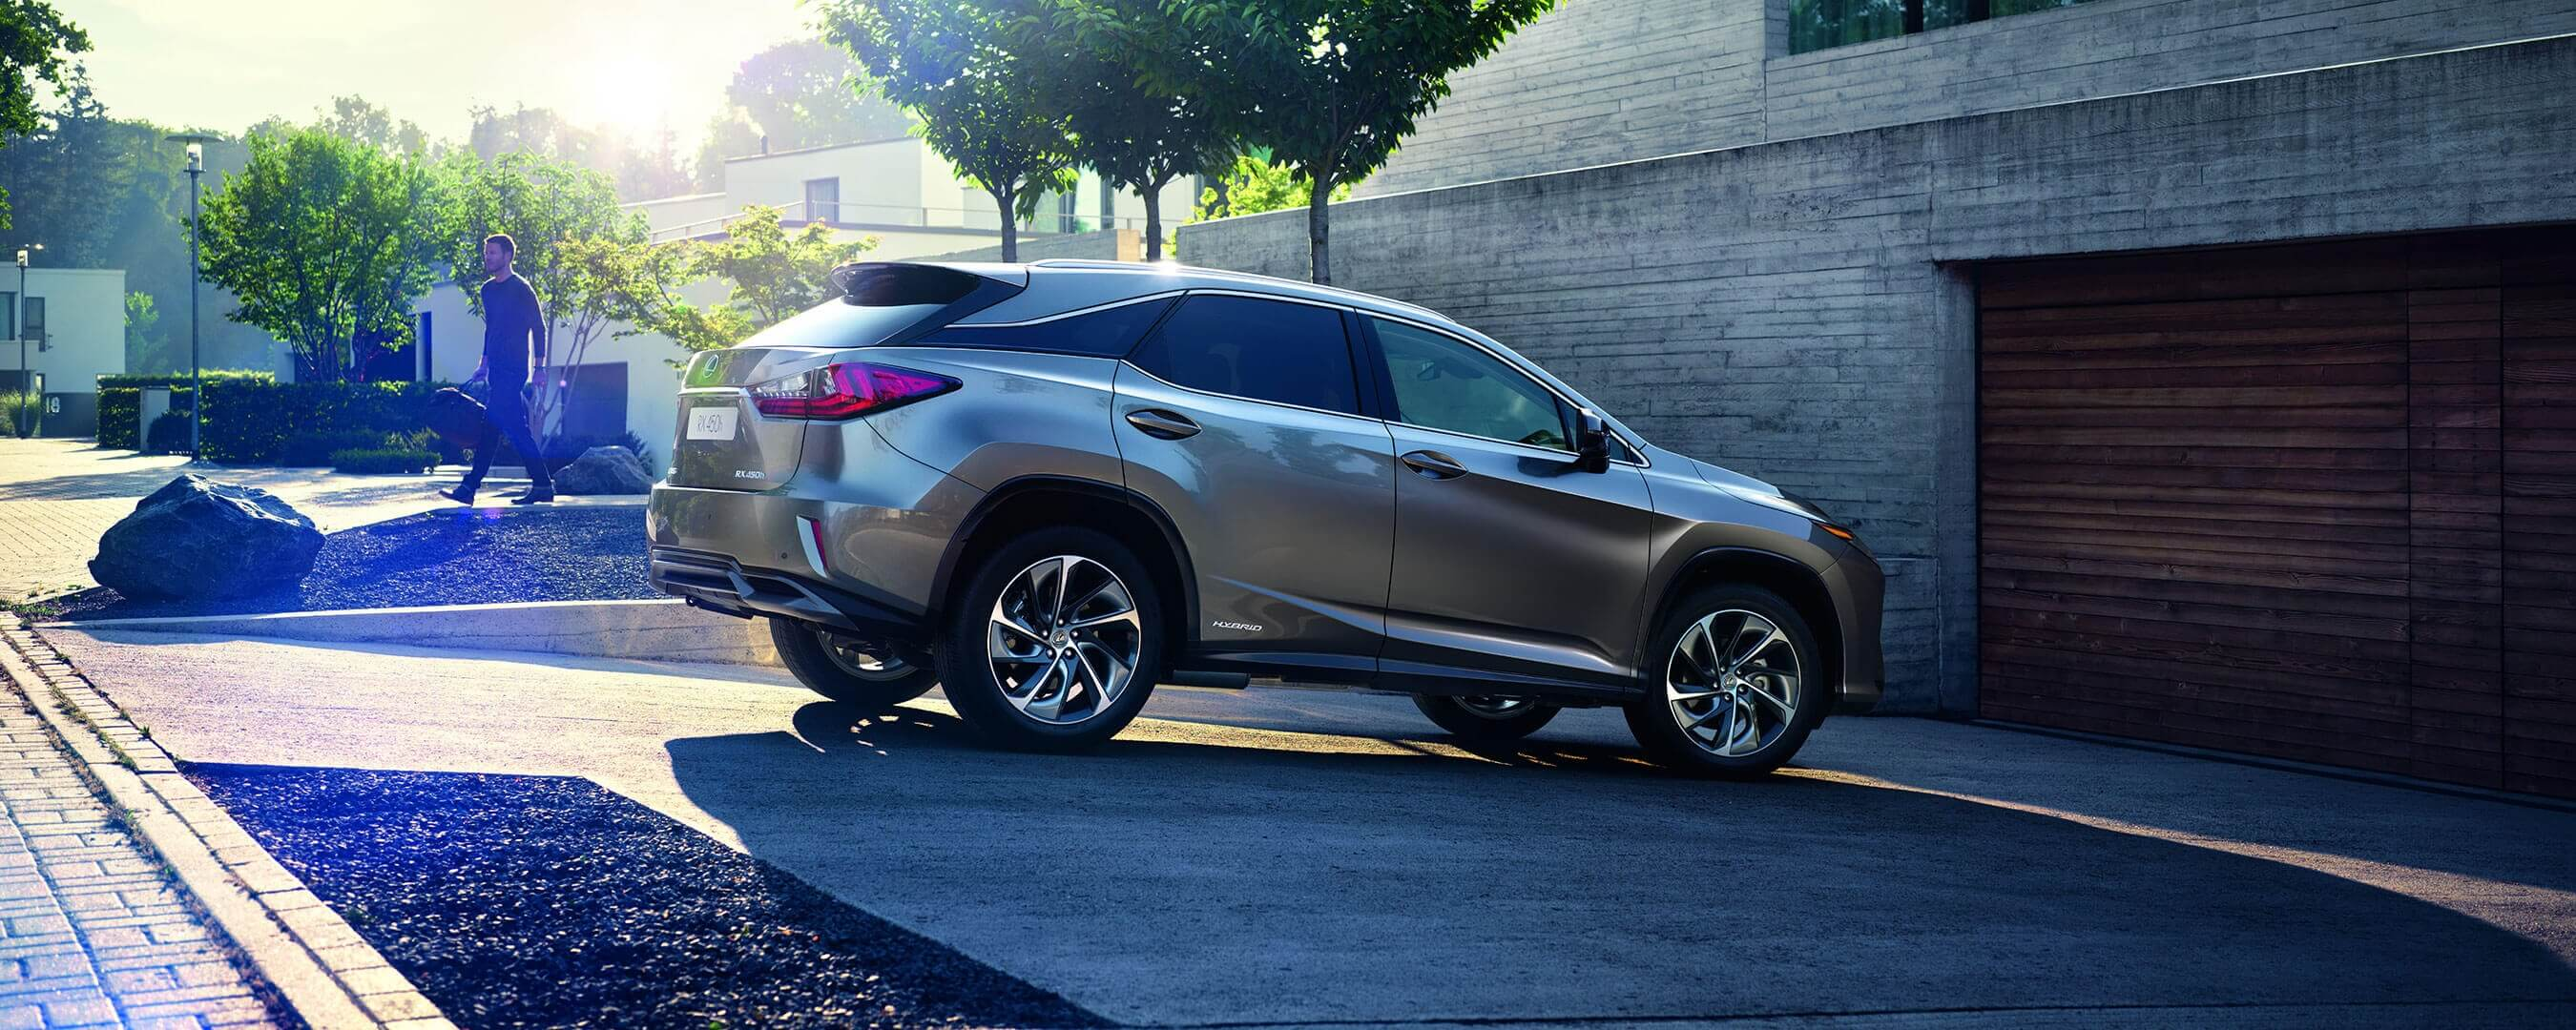 2017 lexus rx 450h experience exterior back